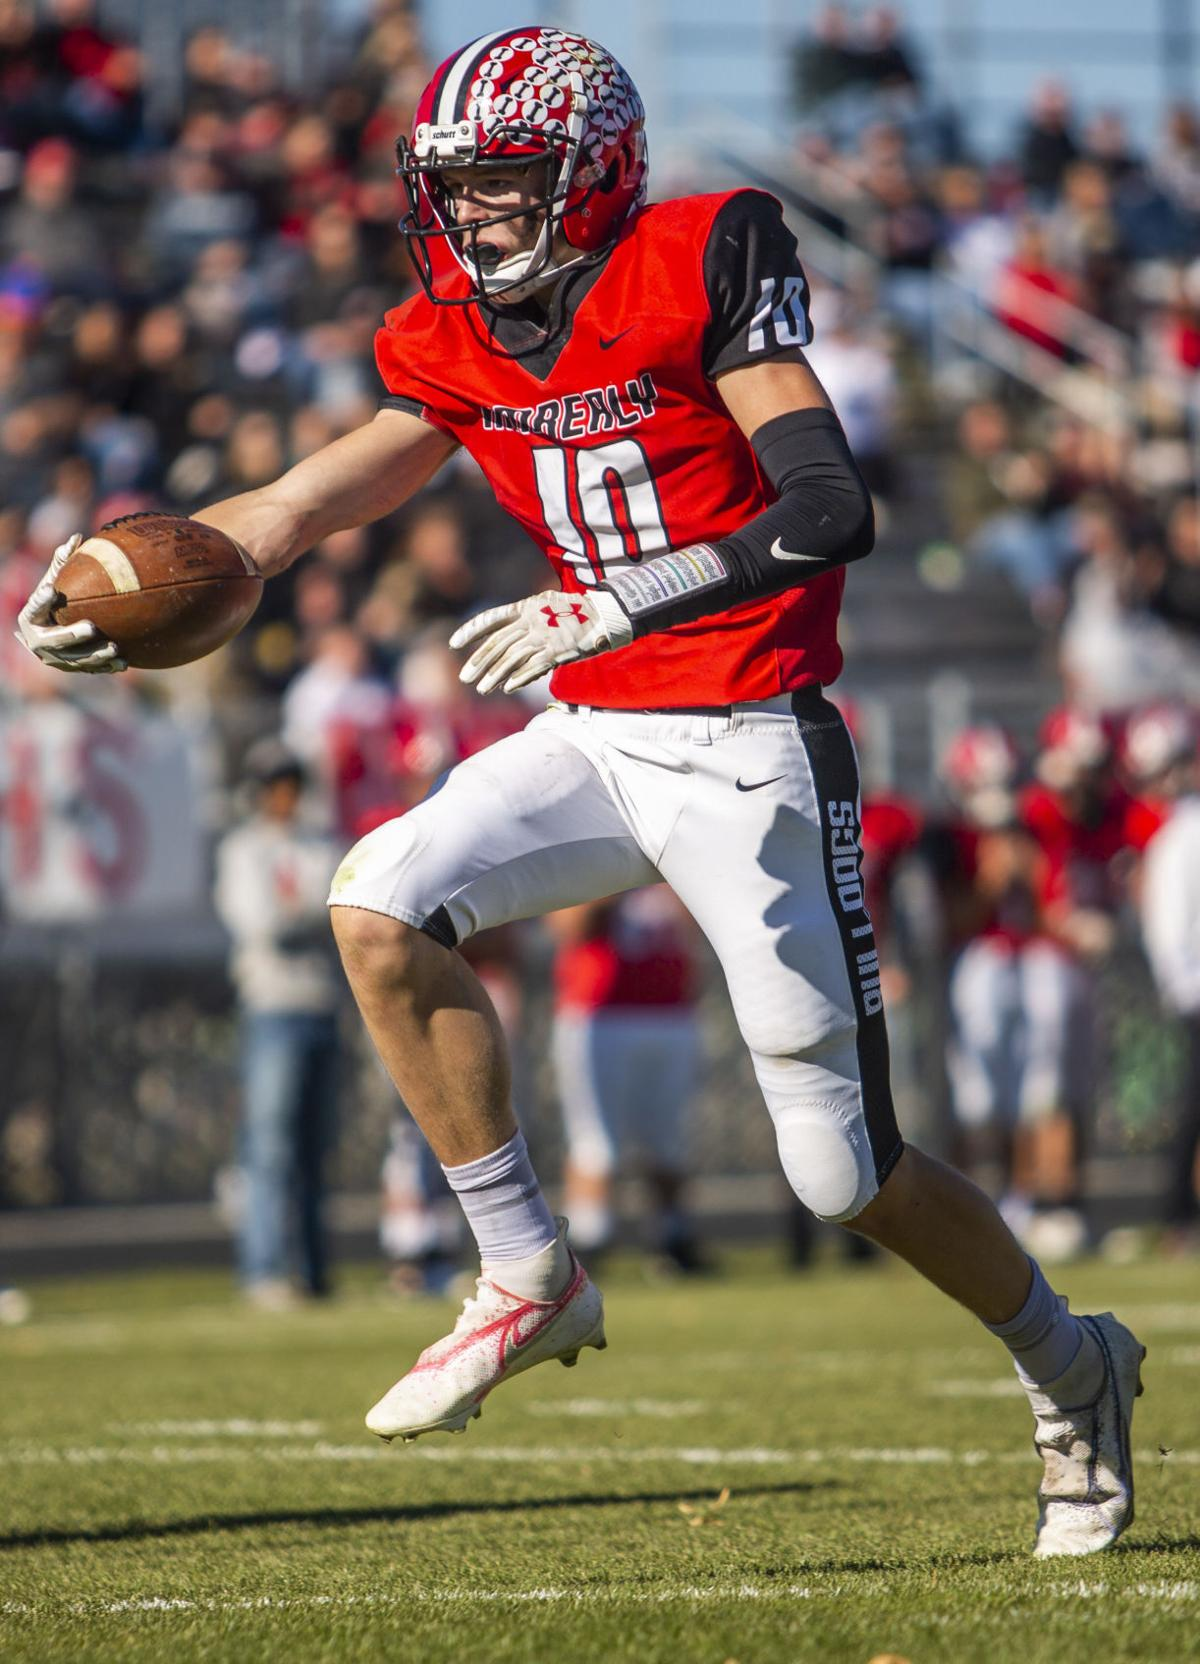 Kimberly pushes past Kellogg in state play-in game